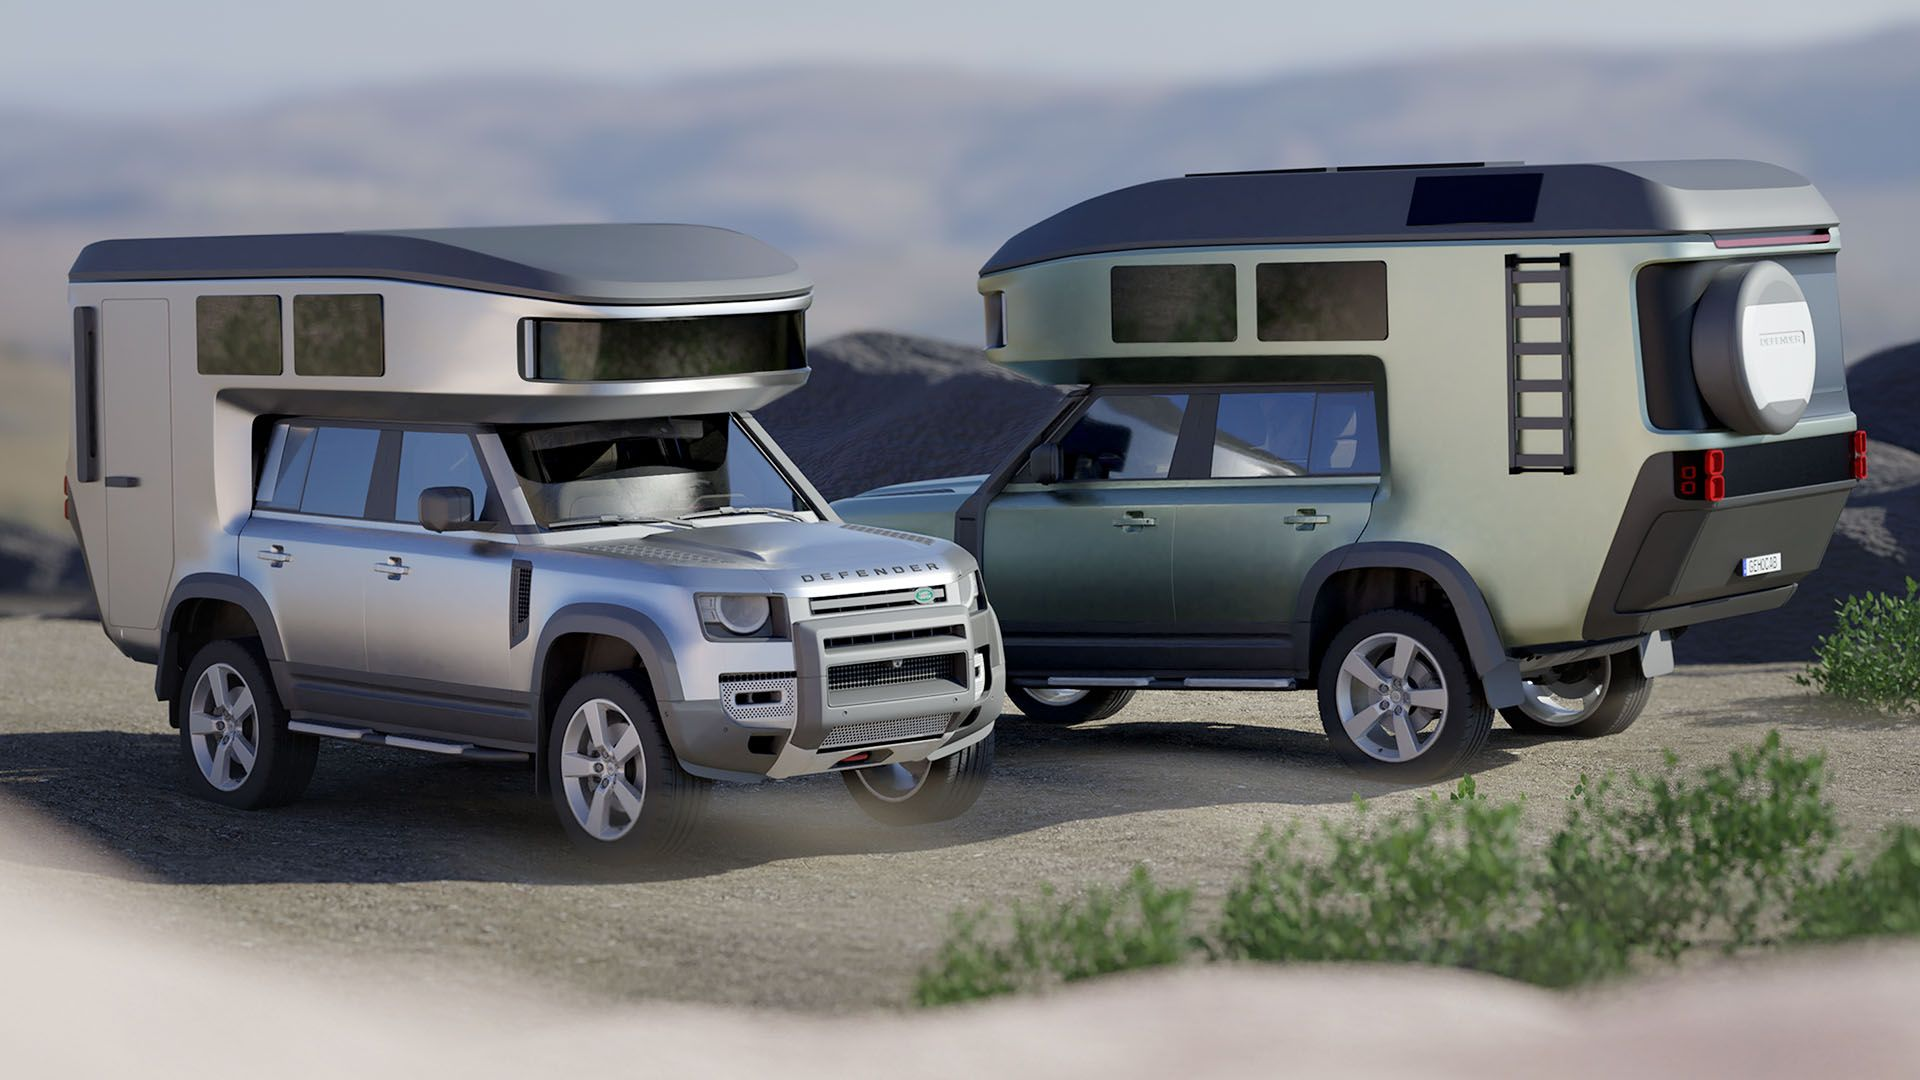 Gehocab Will Turn Your Bronco Or Wrangler Into An Overlanding Rv